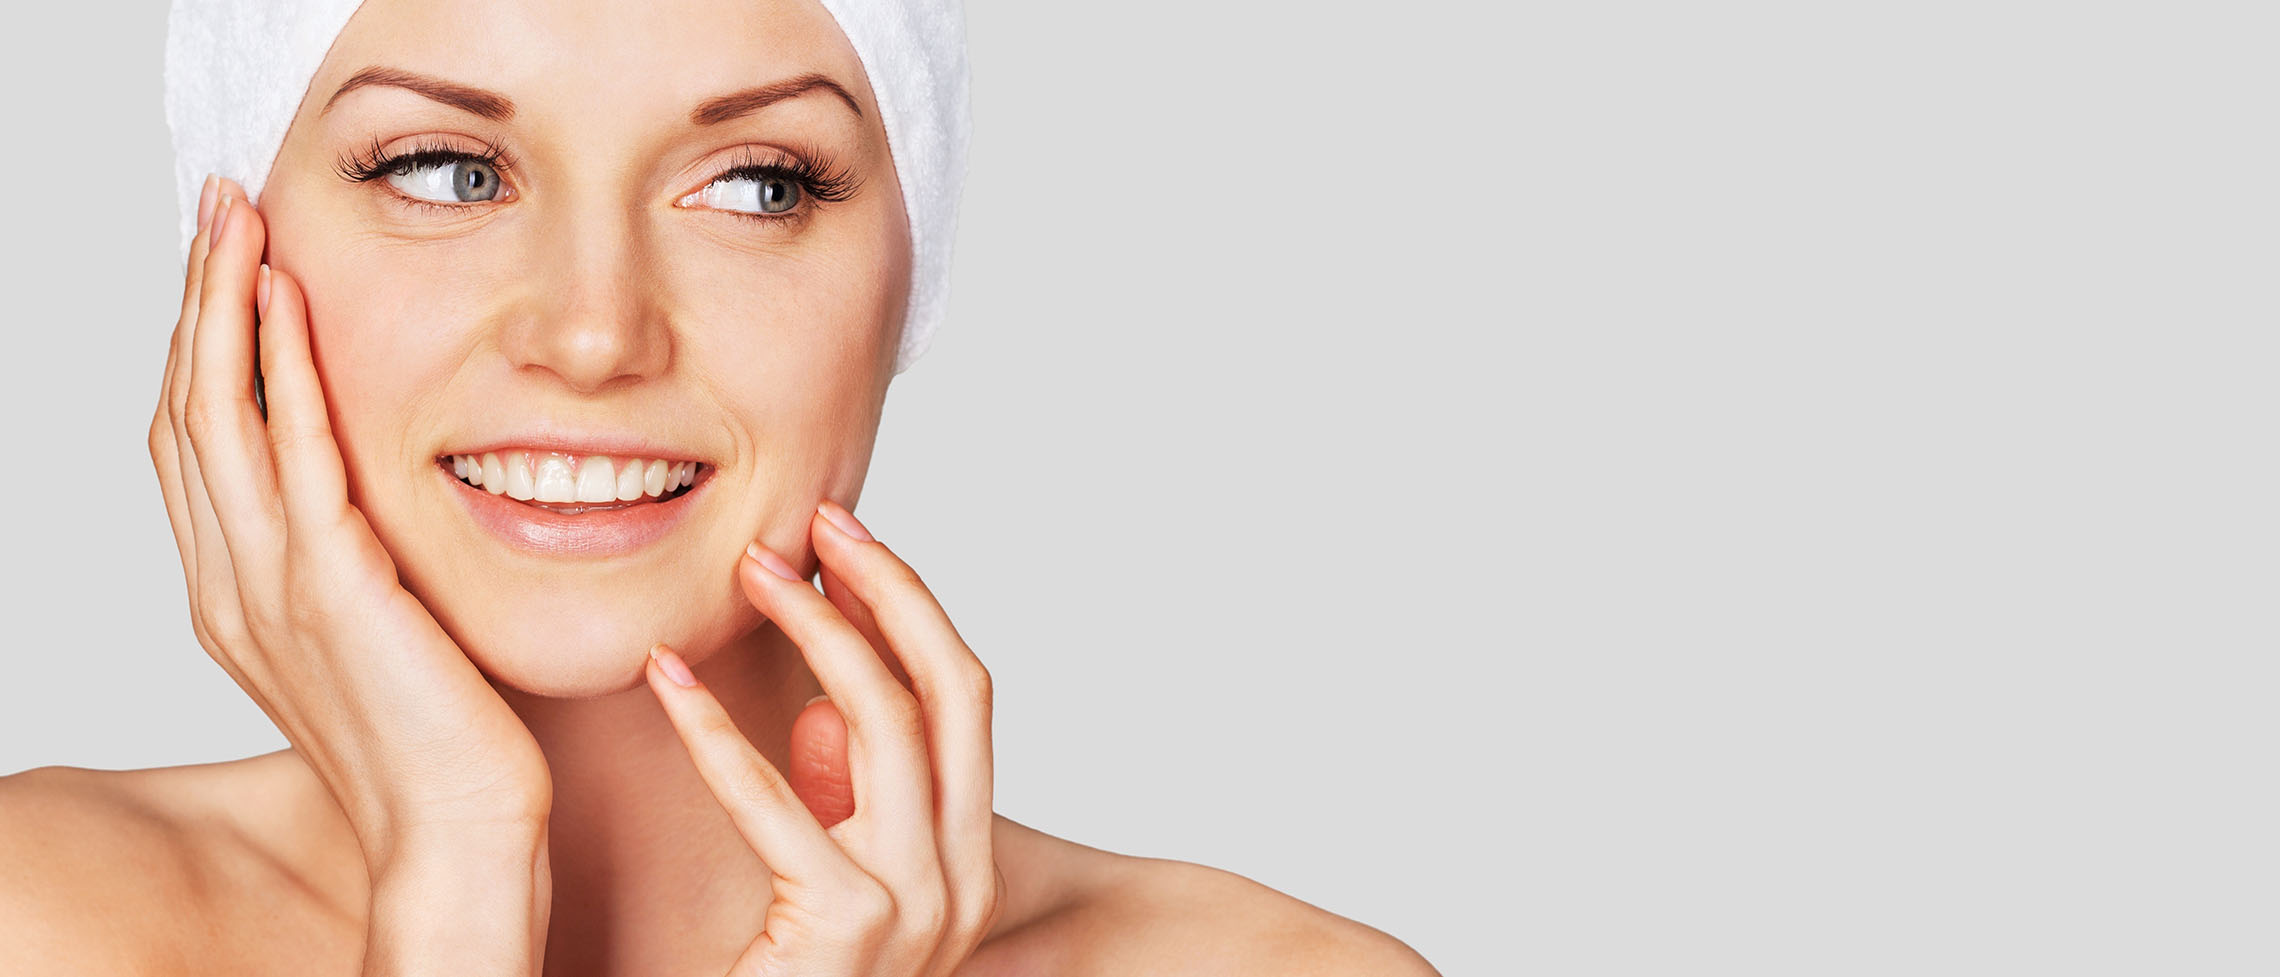 Simply remarkable quick facial surgery can